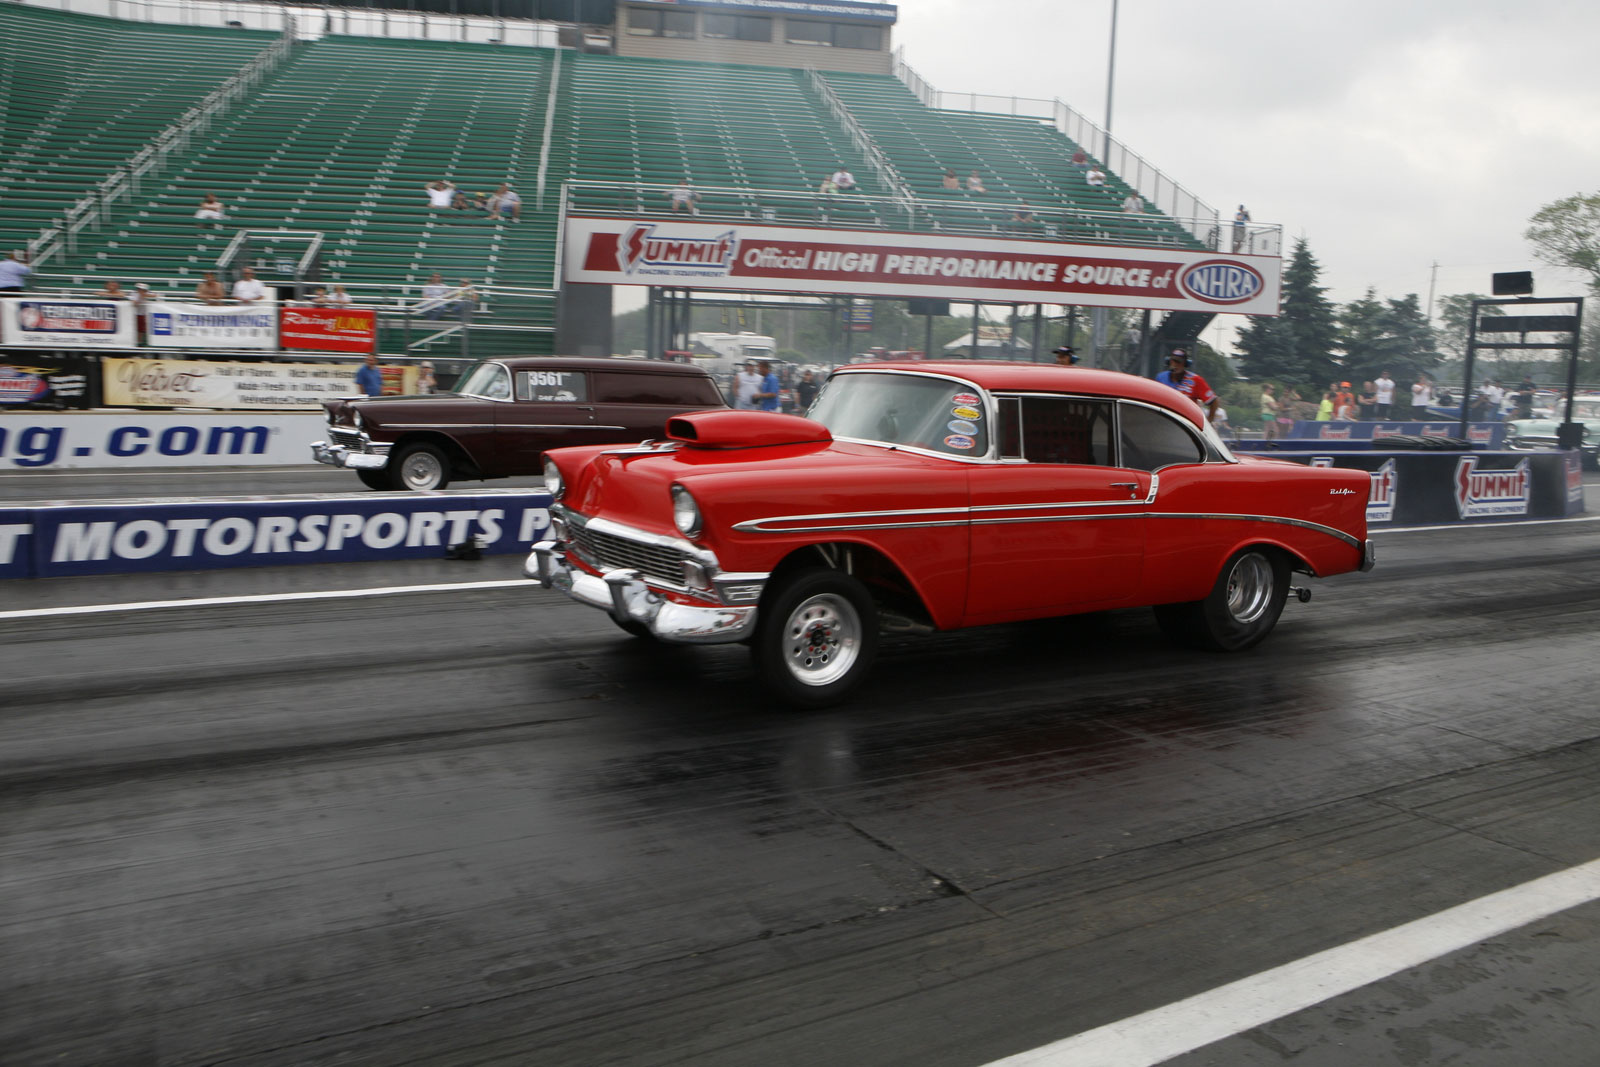 Sucp_1006w_12 Super_chevy_show_2010 Norwalk_ohio